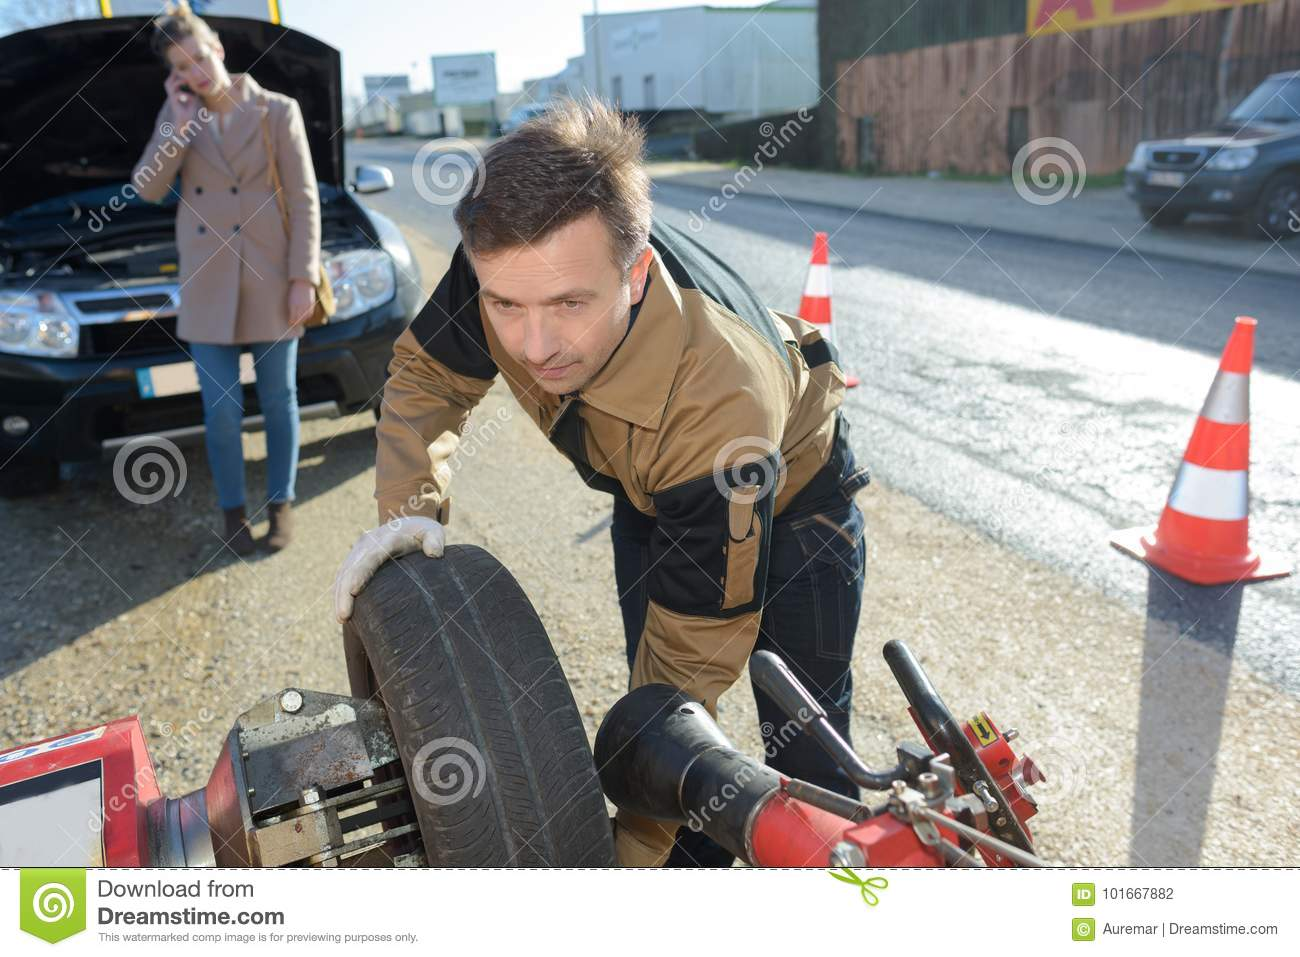 Man fixing car problem after vehicle breakdown